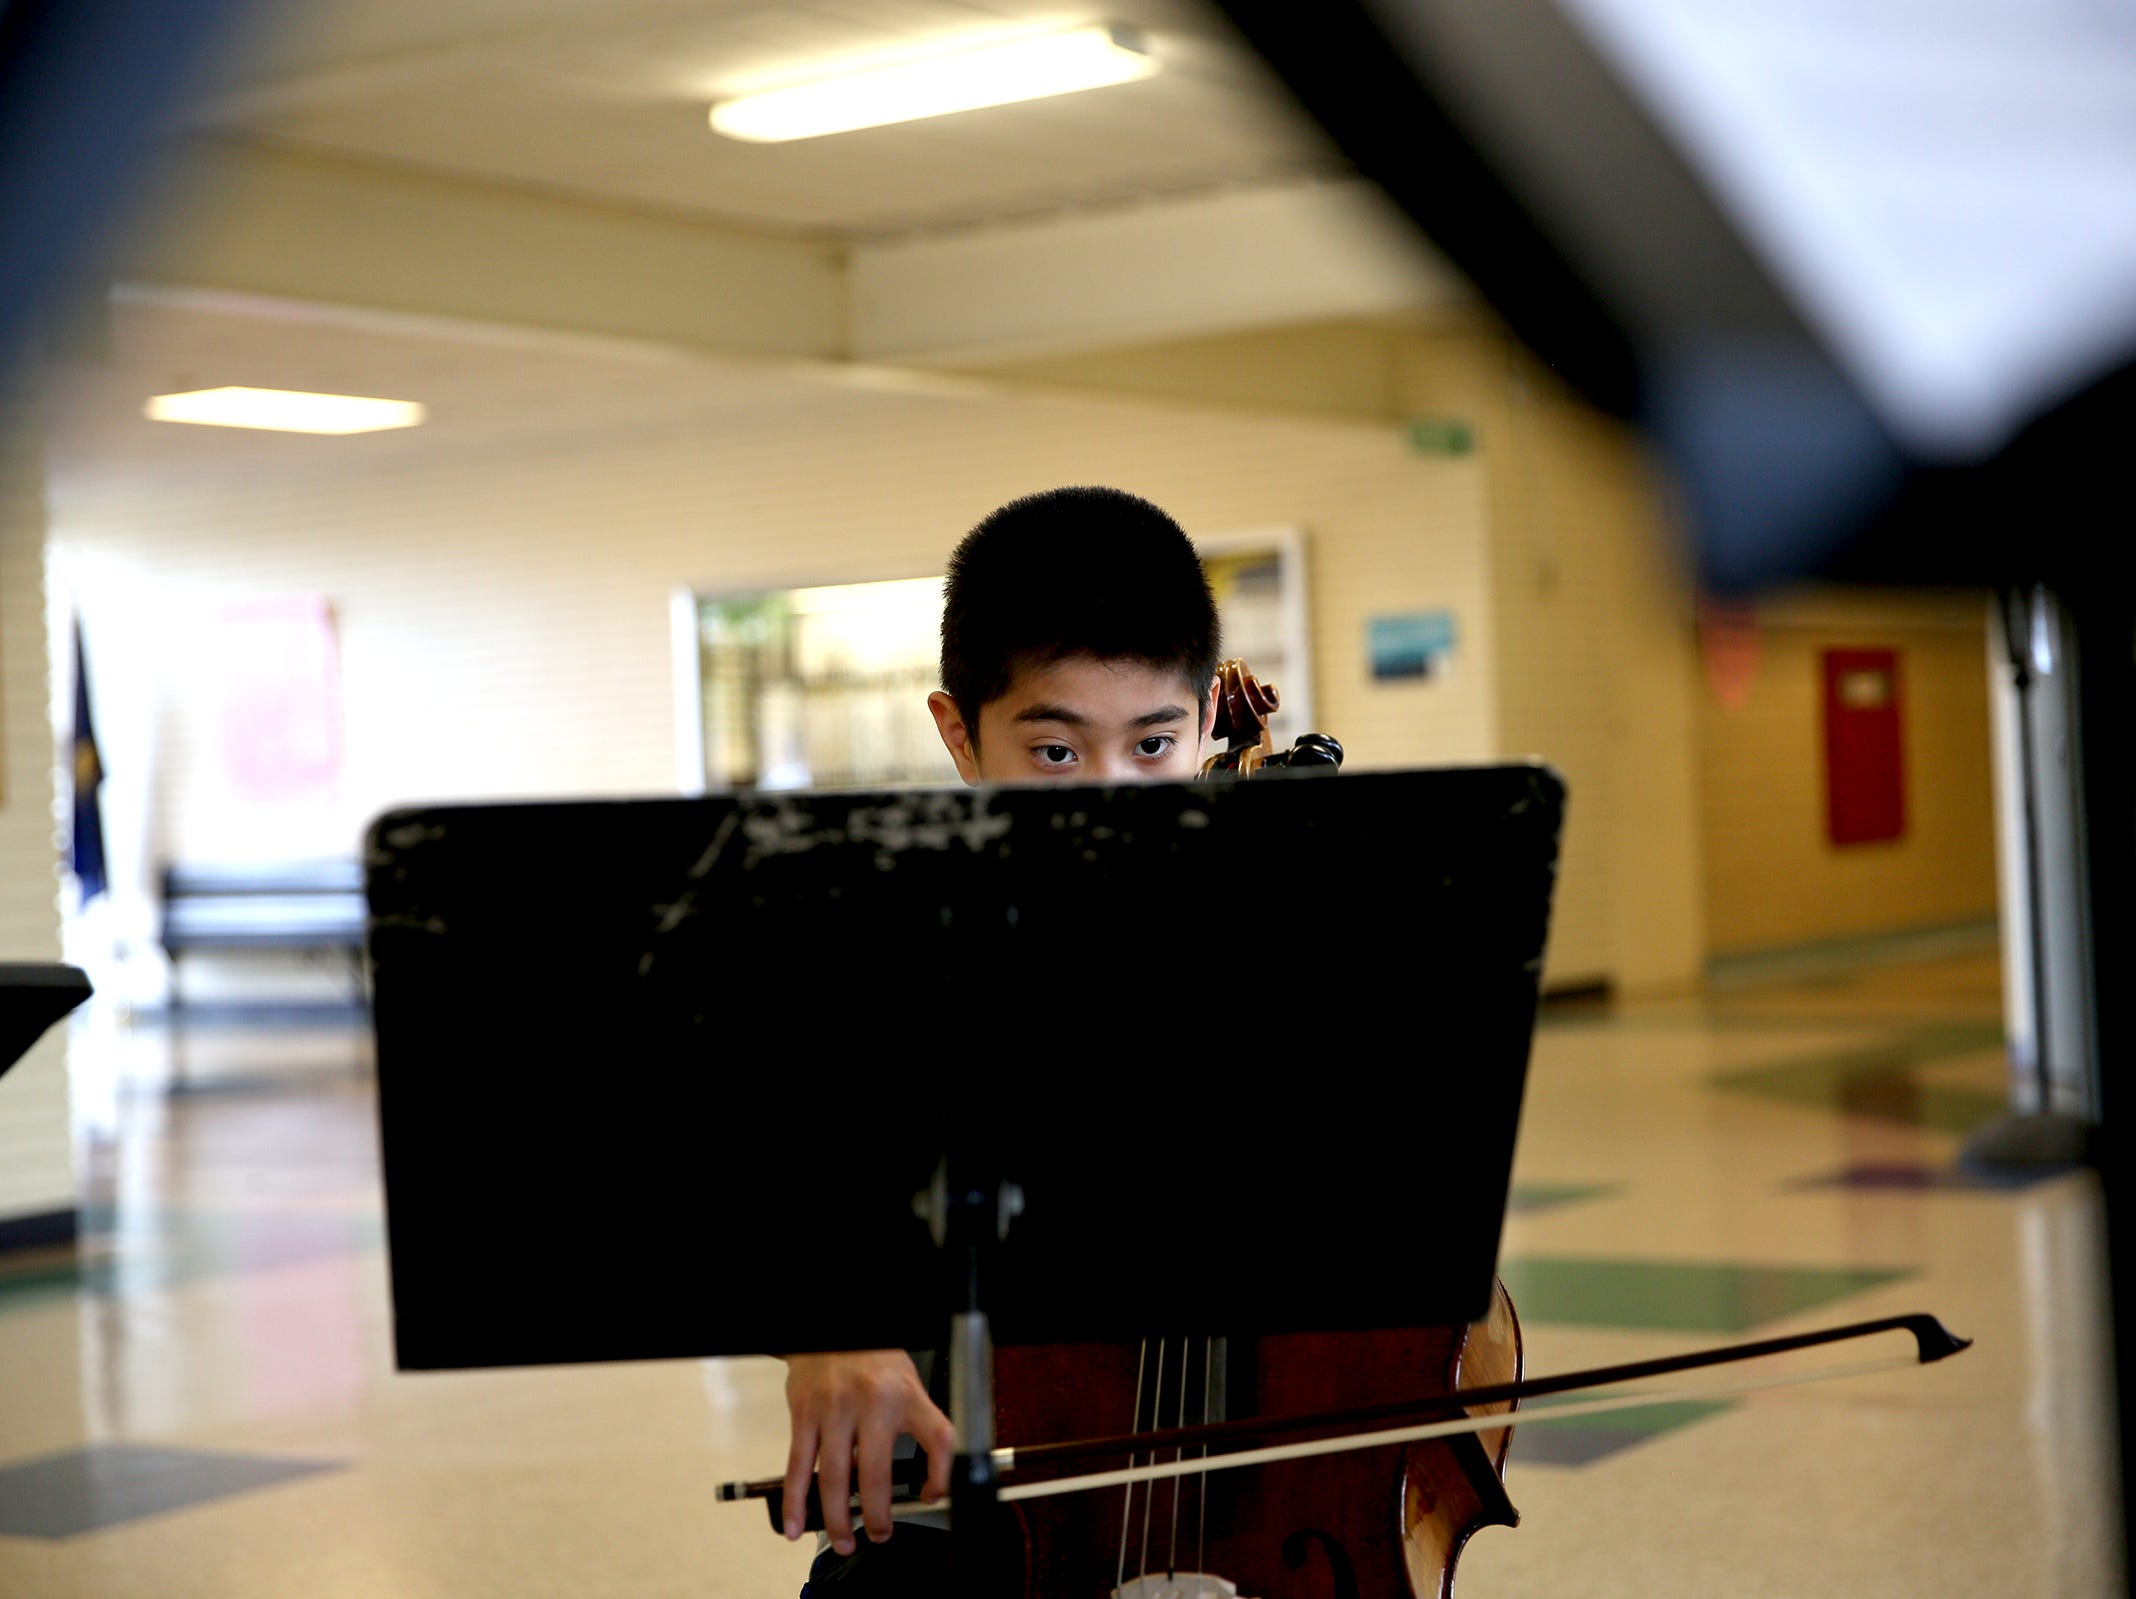 Sixth grade student, Ivan Rodriguez, reads sheet music while practicing his cello during practice at Waldo Middle School on April 19, 2019.